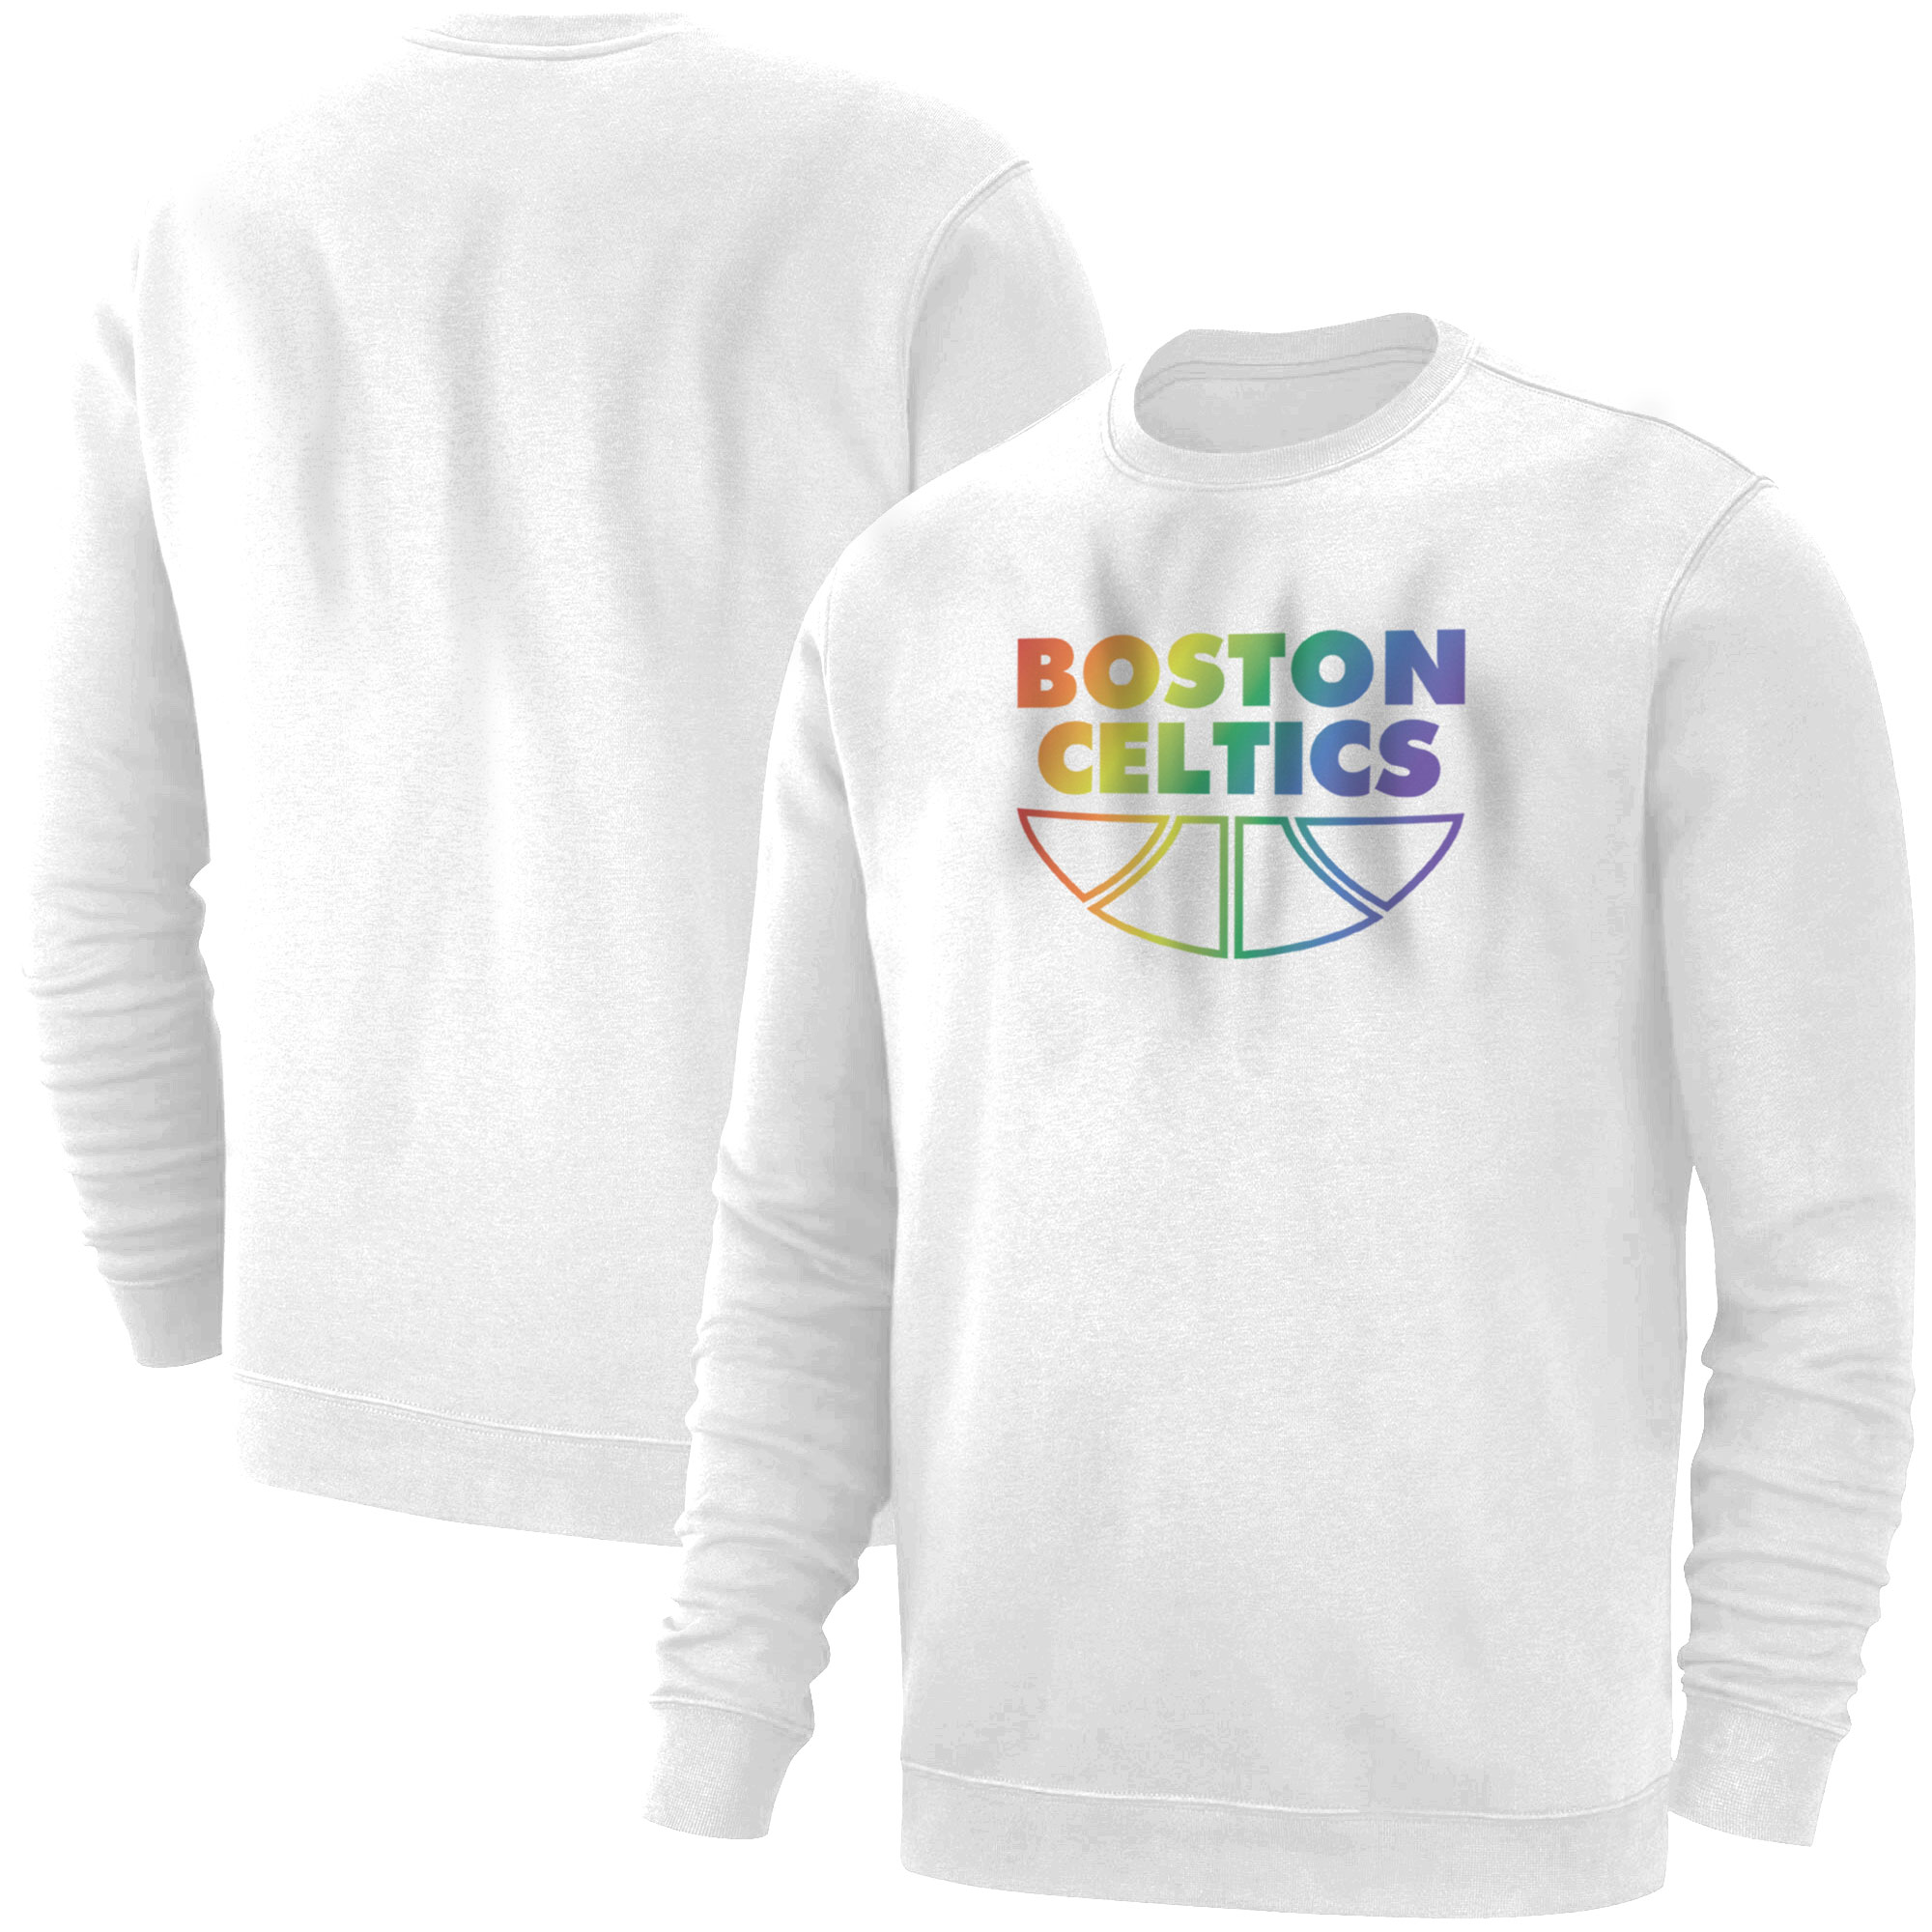 Boston Celtics Basic (BSC-WHT-503-NBA-MIL	)